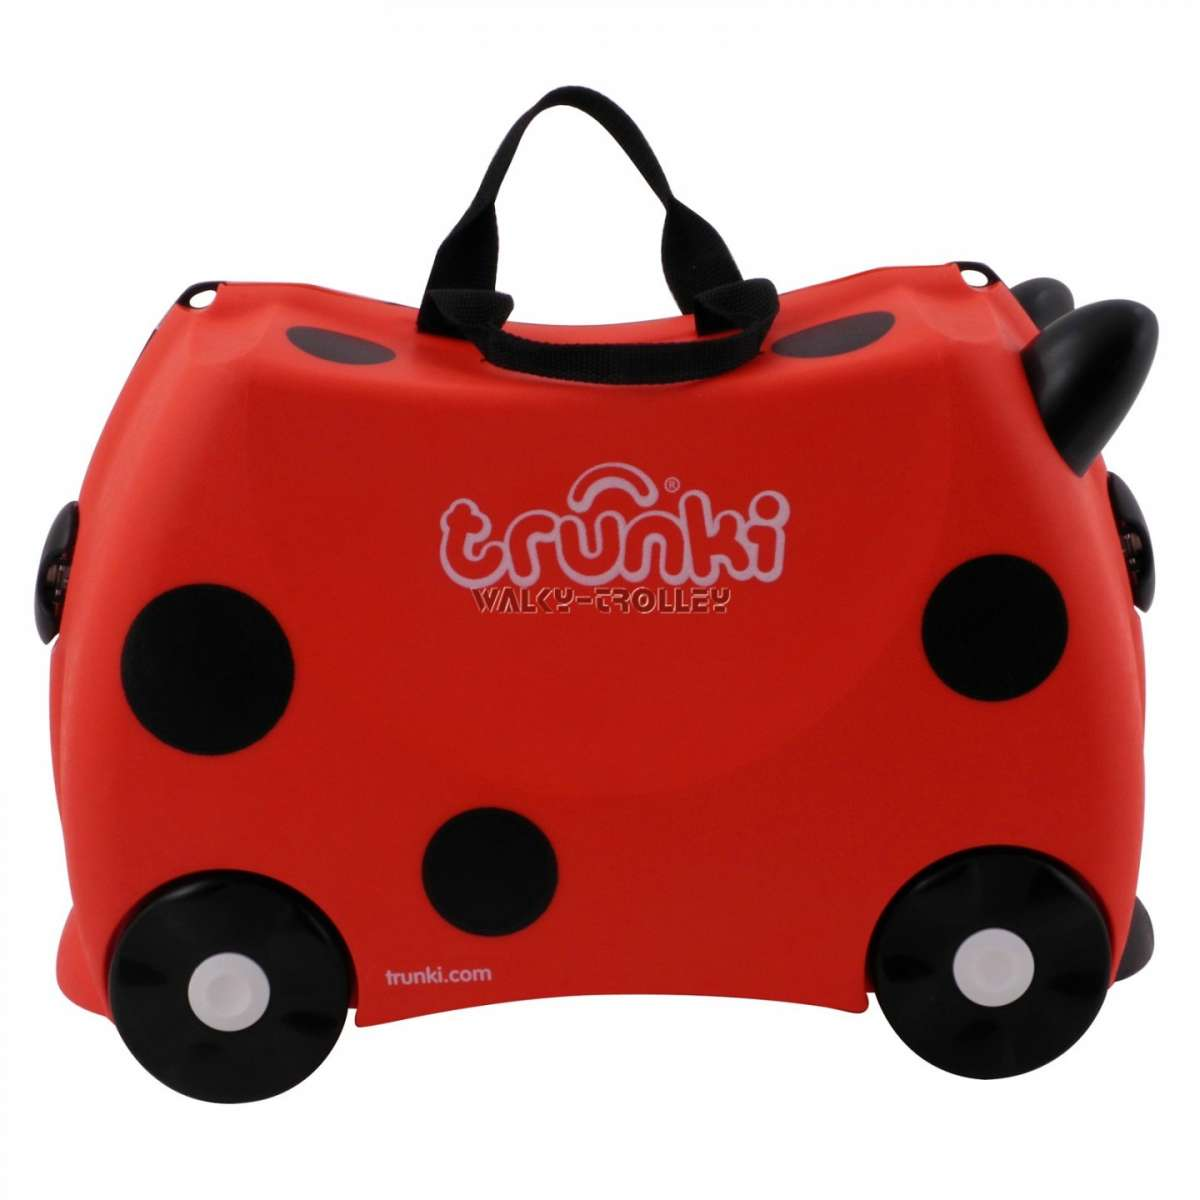 Trolley per bambini rosso a pois Trunki